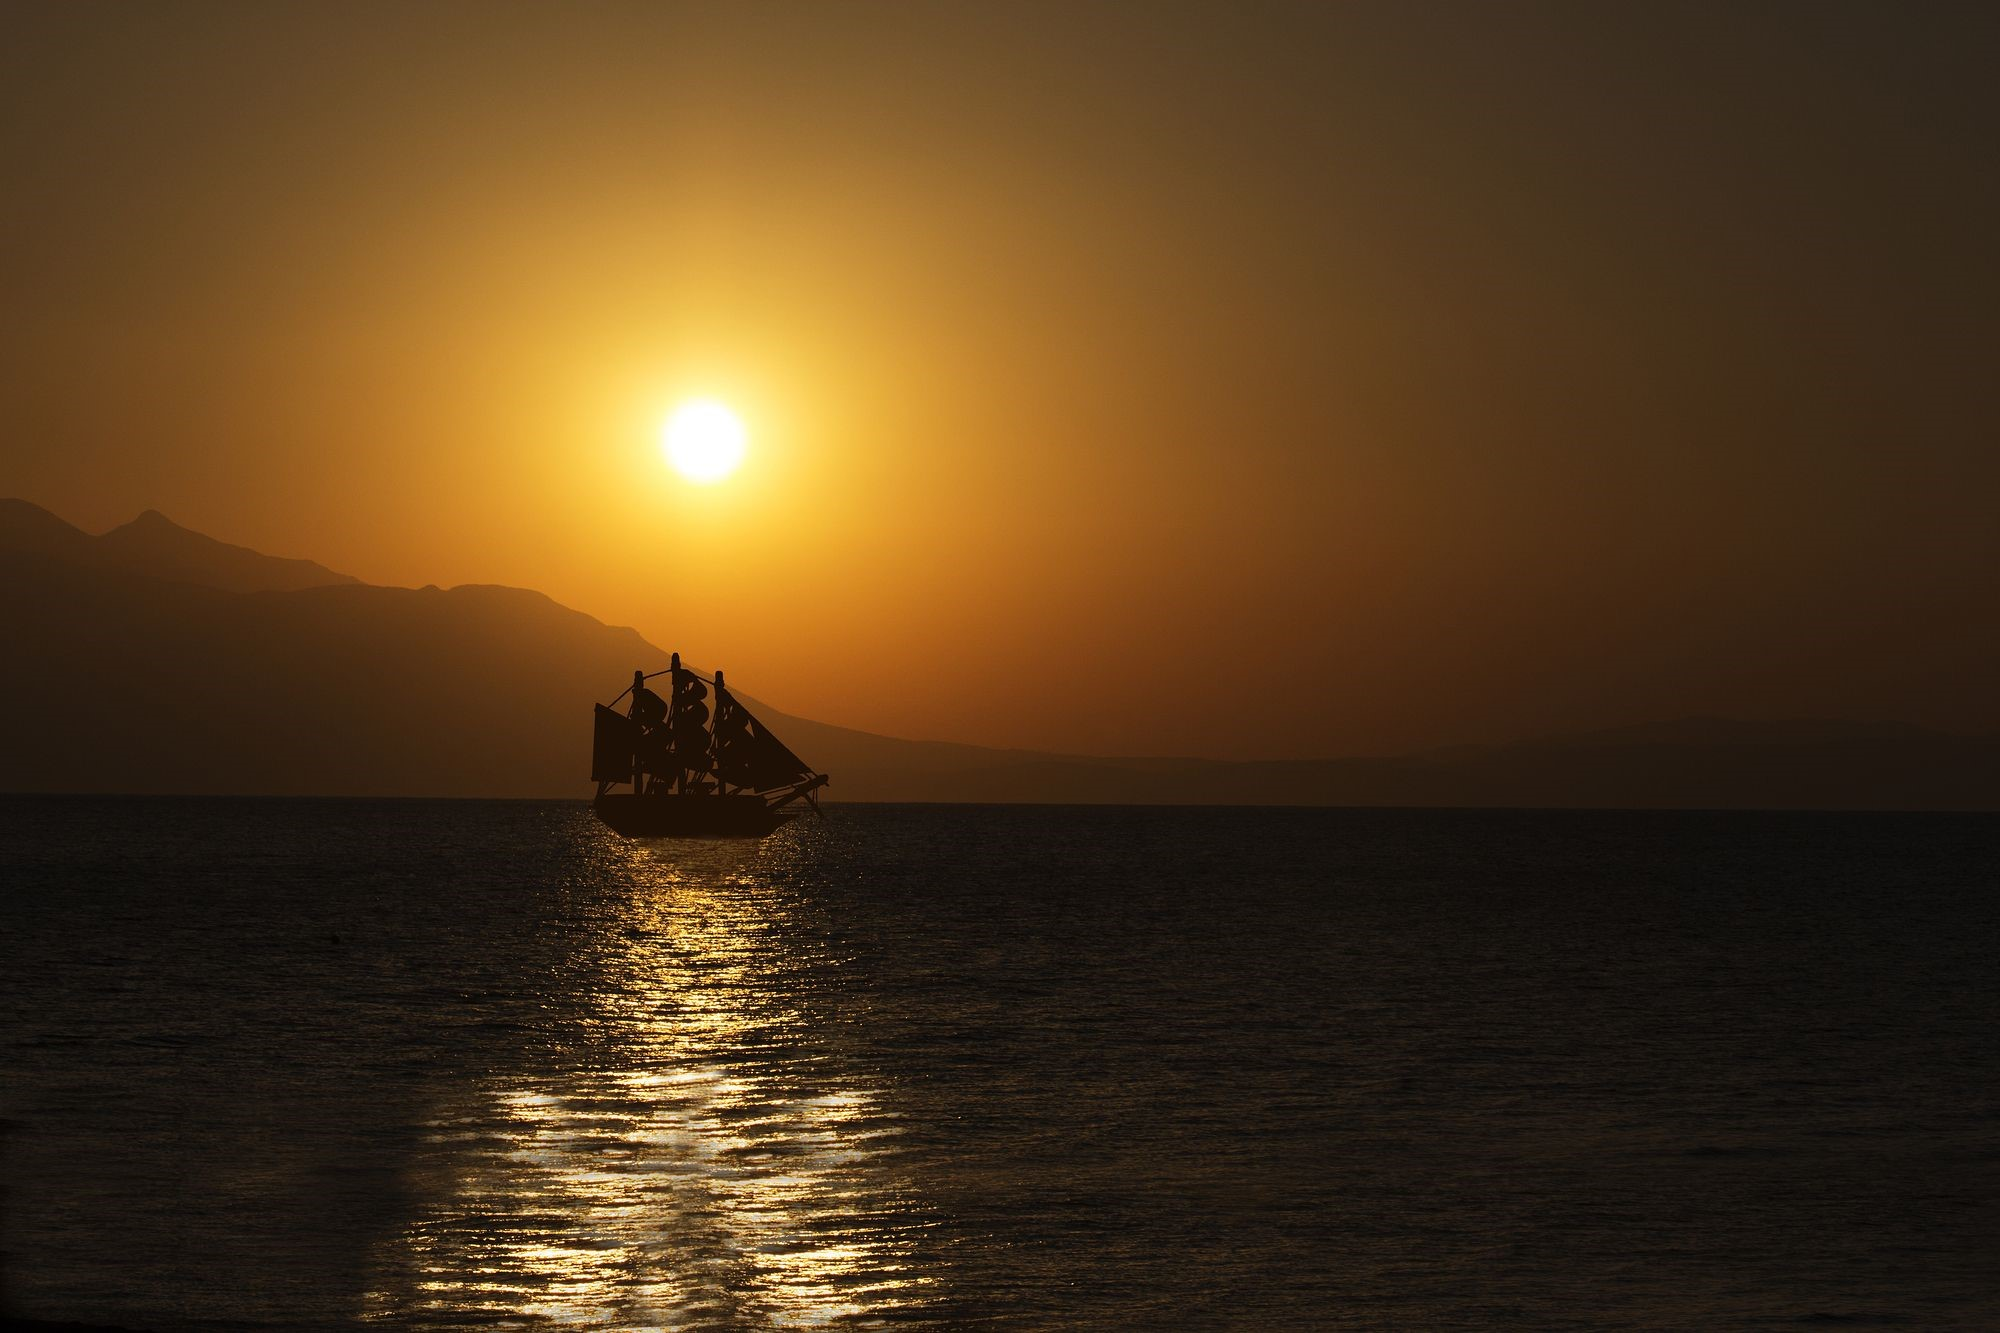 A Classic Schooner Makes an Ideal Vessel for a Burial at Sea Ceremony